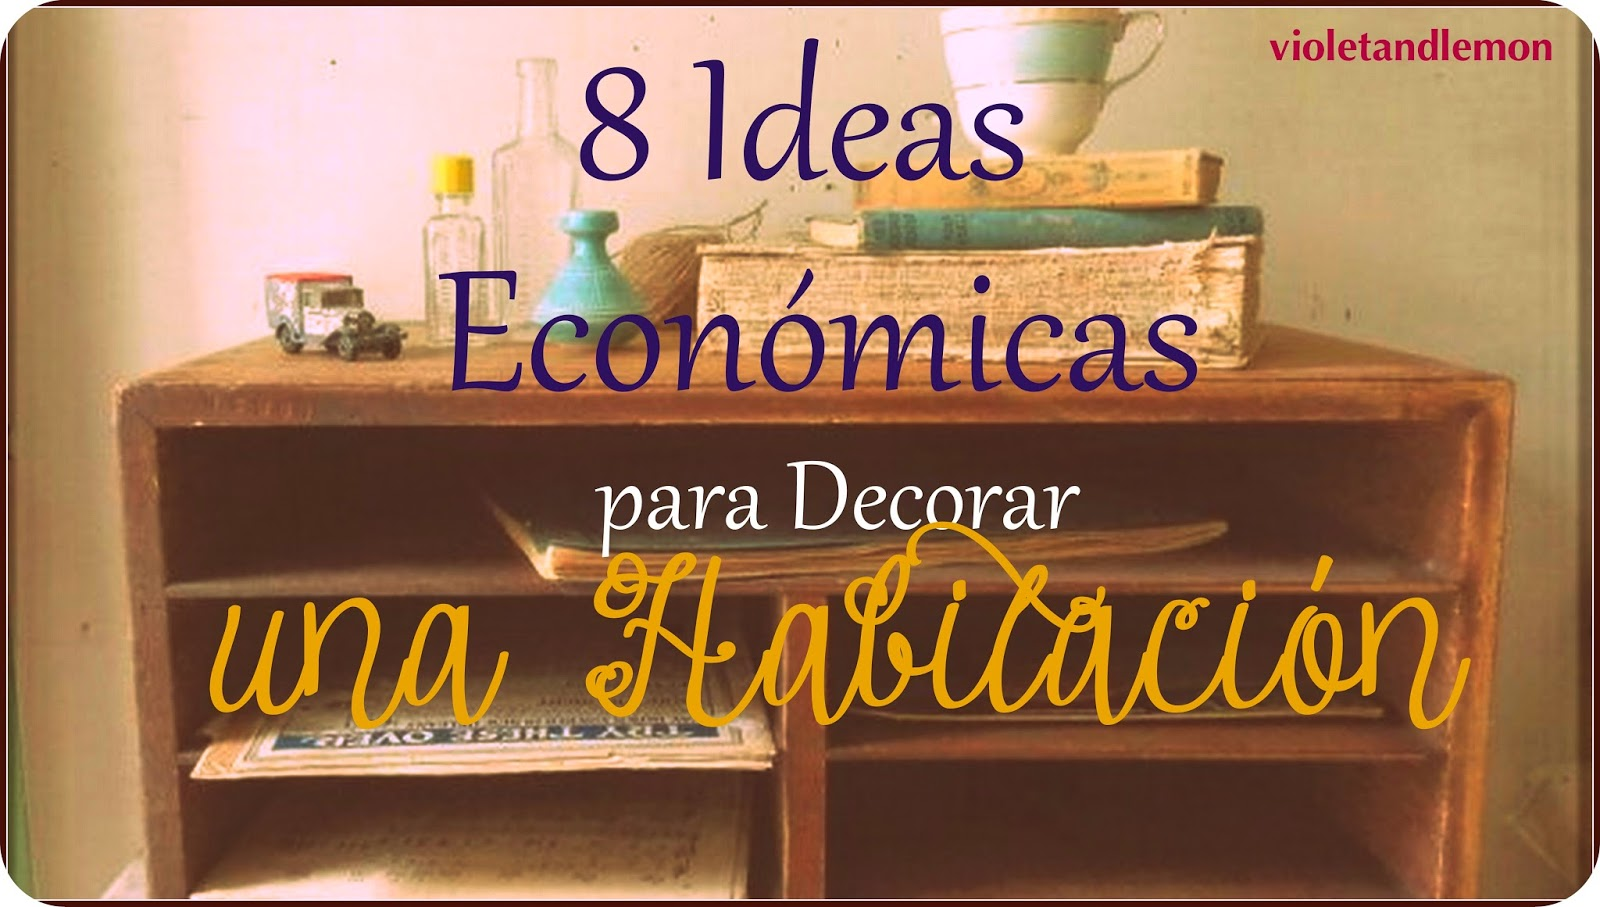 Violeta y lim n 8 ideas econ micas para decorar una for Consejos para decorar mi casa